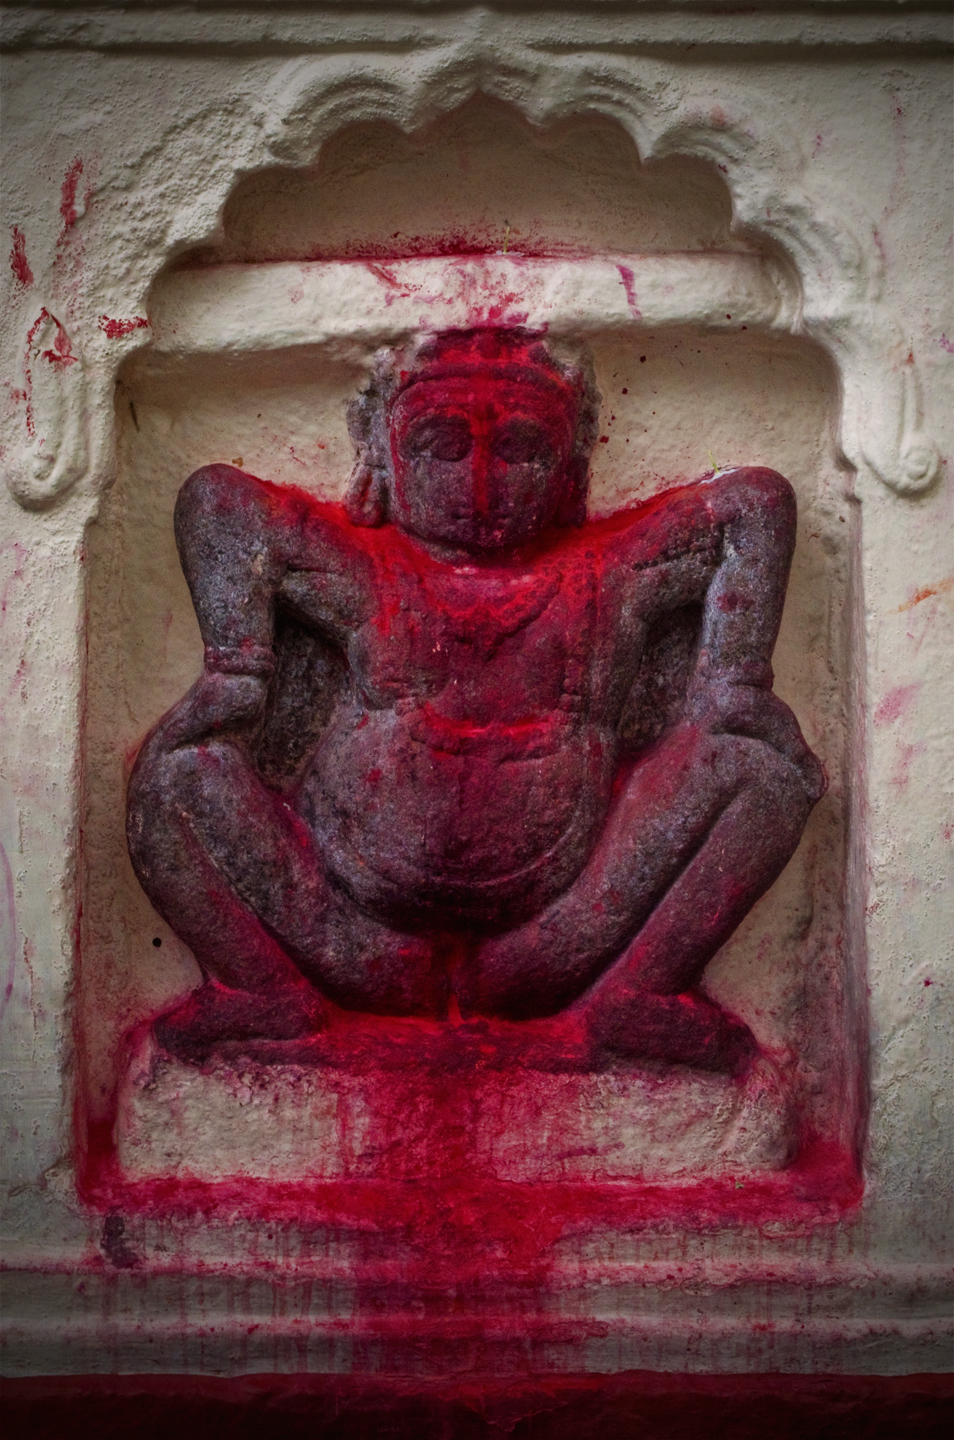 Moon Blood. Every year the goddess Kamkhya's menstrual cycle is celebrated during a festival known as the Ambuvachi Mela.